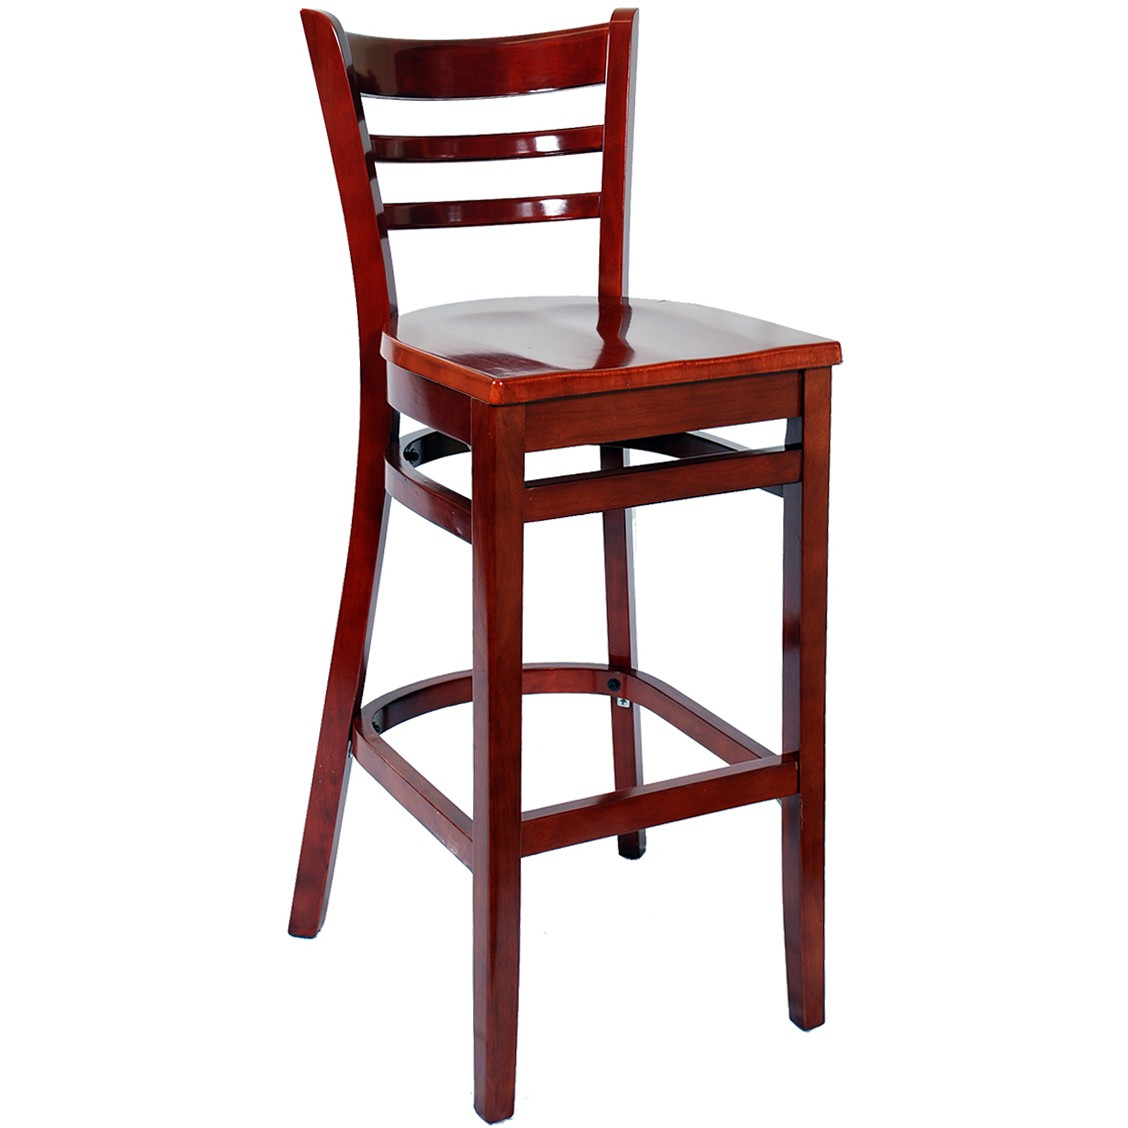 Ladder back wood bar stools for Counter stools with backs